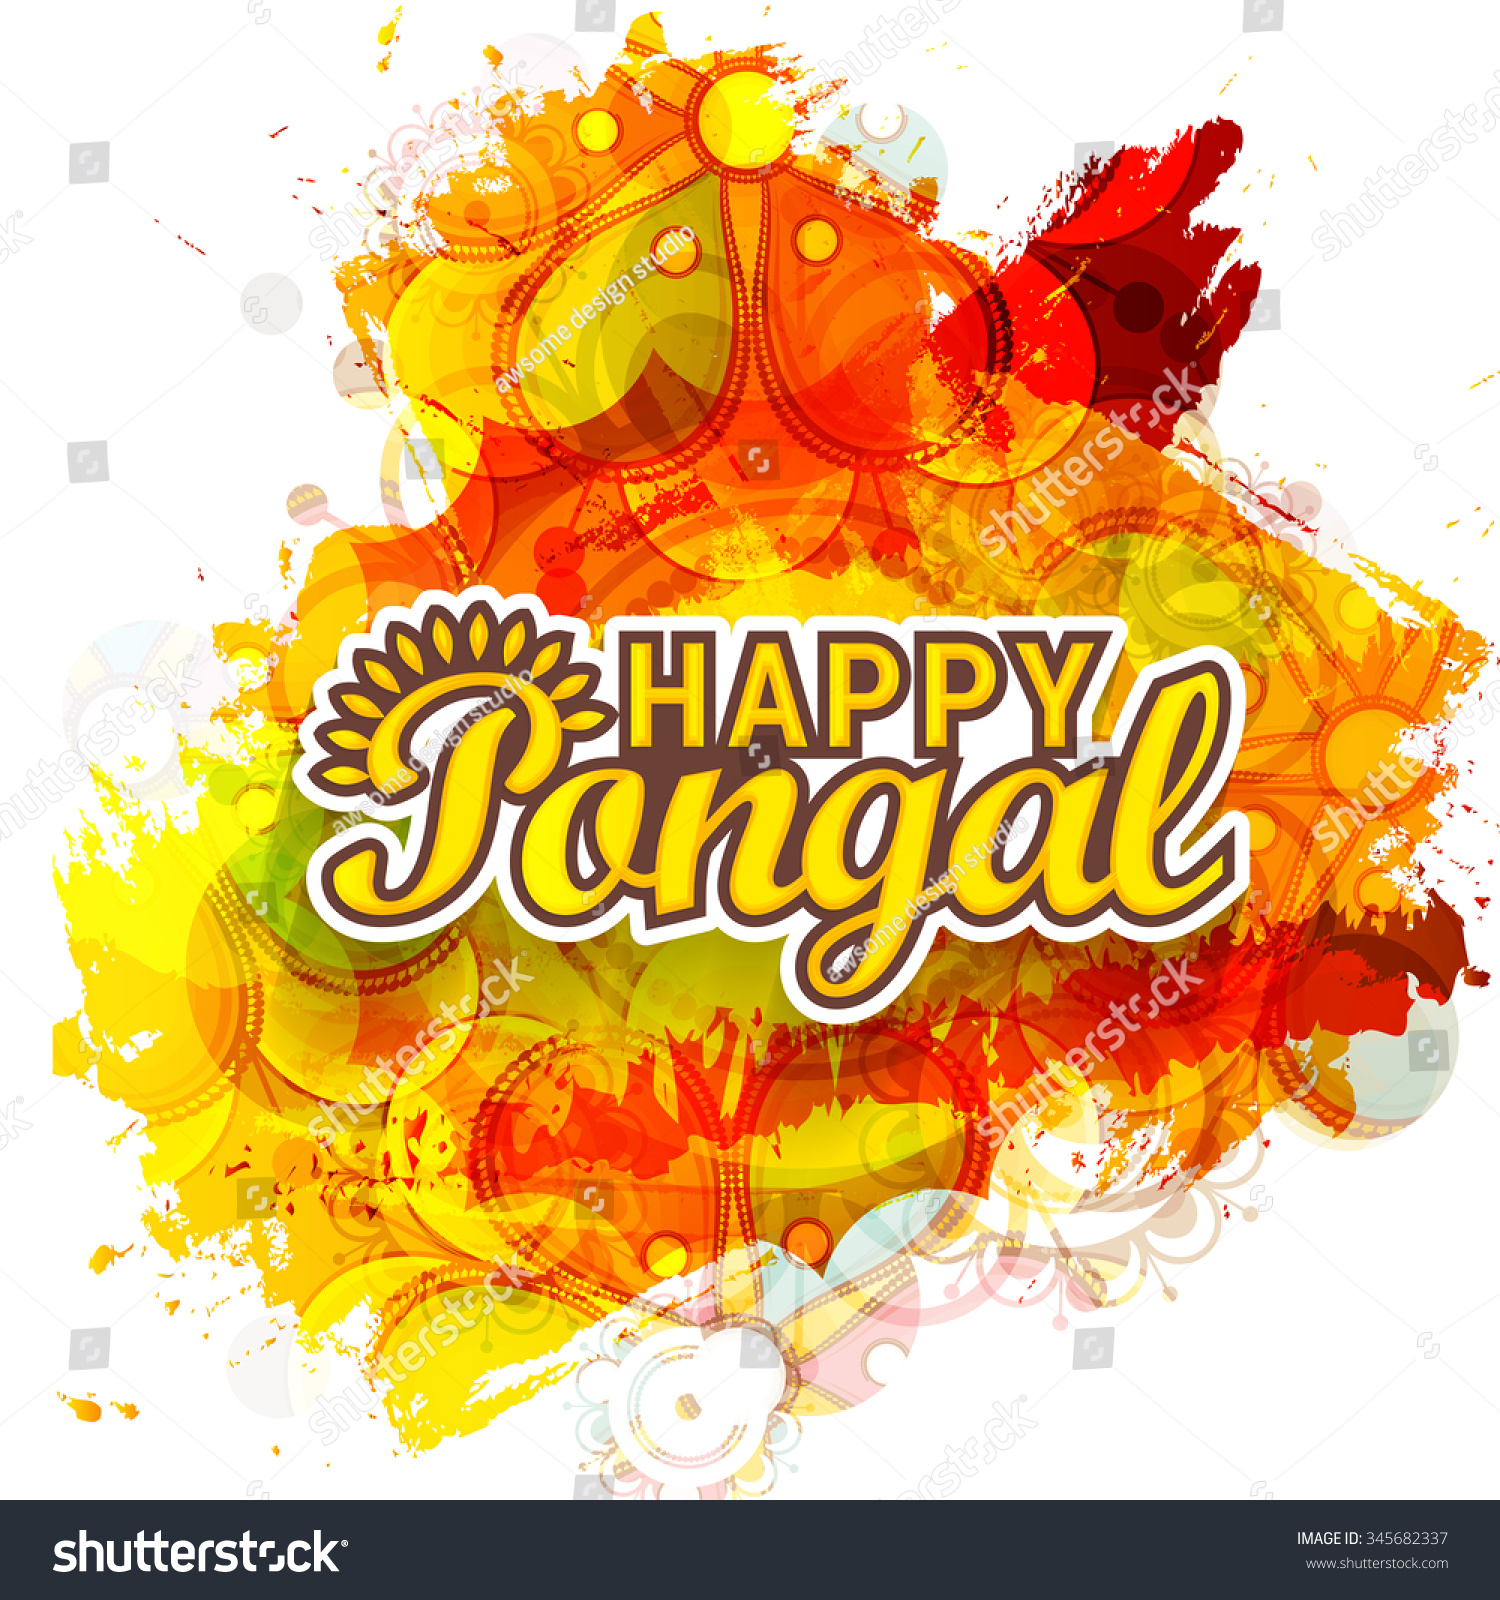 Happy pongal greetings with former homemade card designs vector illustration happy pongal greeting card stock vector stock vector vector illustration of happy pongal greeting m4hsunfo